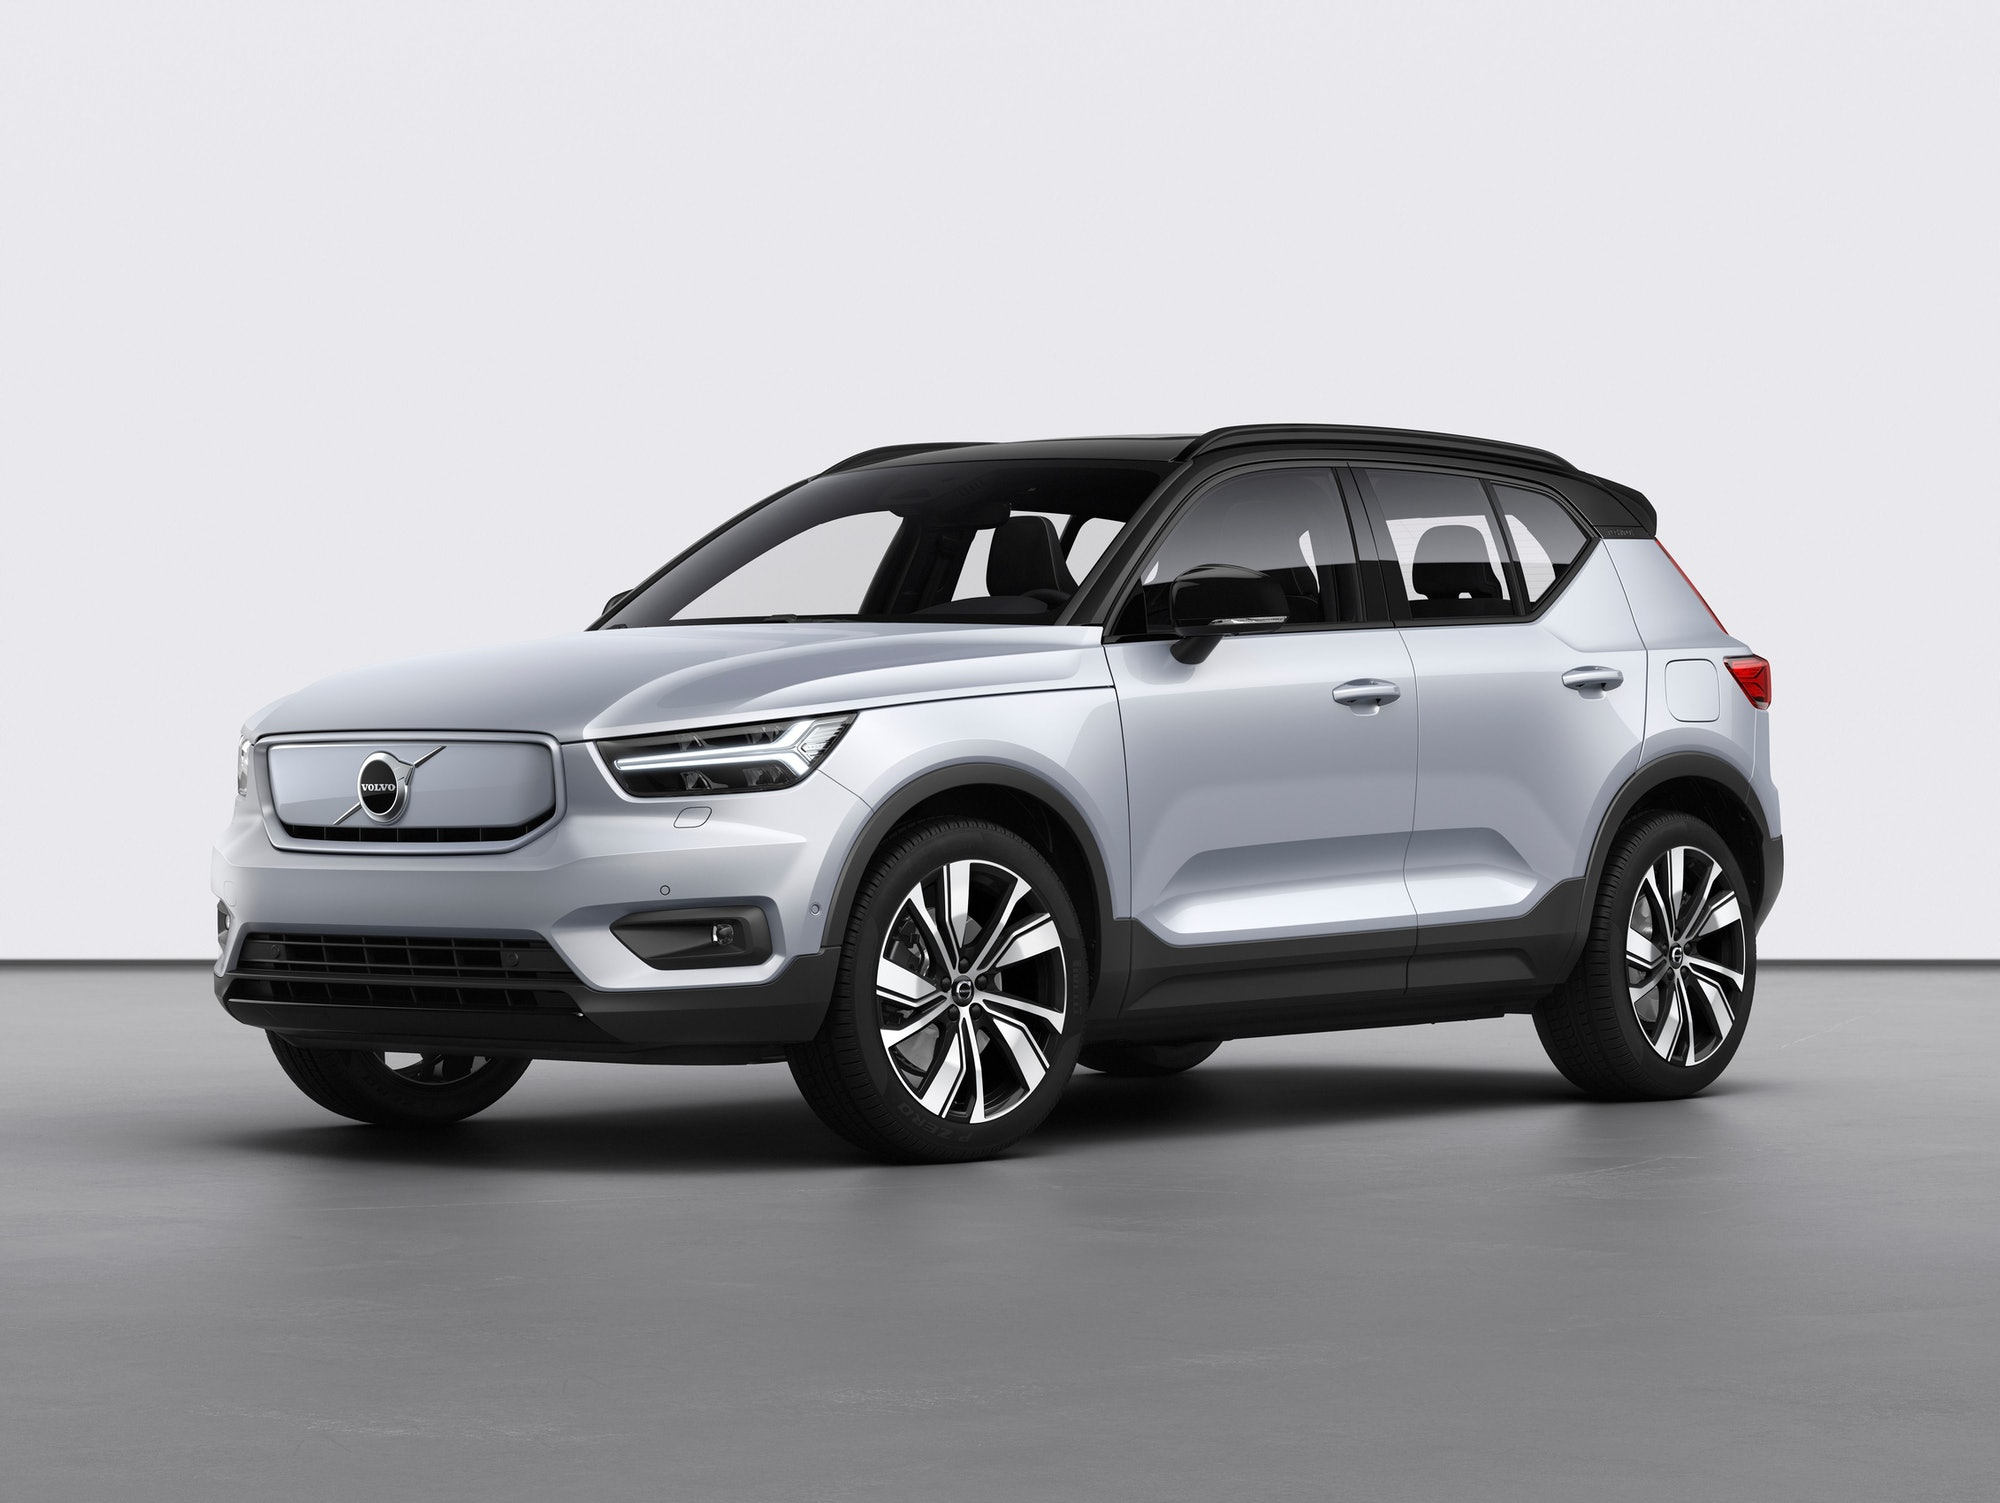 The Volvo XC40 from the front.